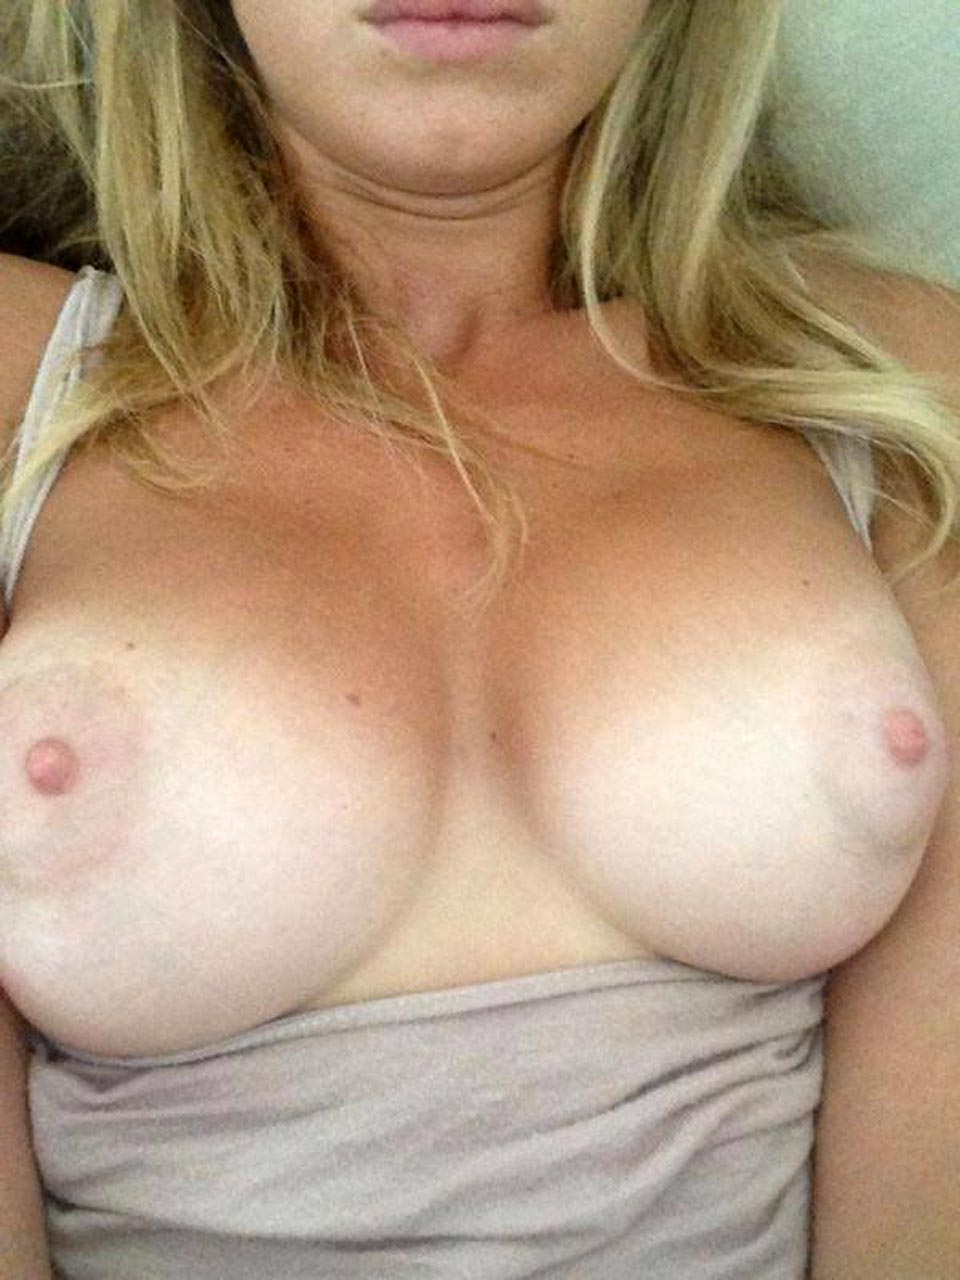 Hayley McQueen Nude Photos and Videos